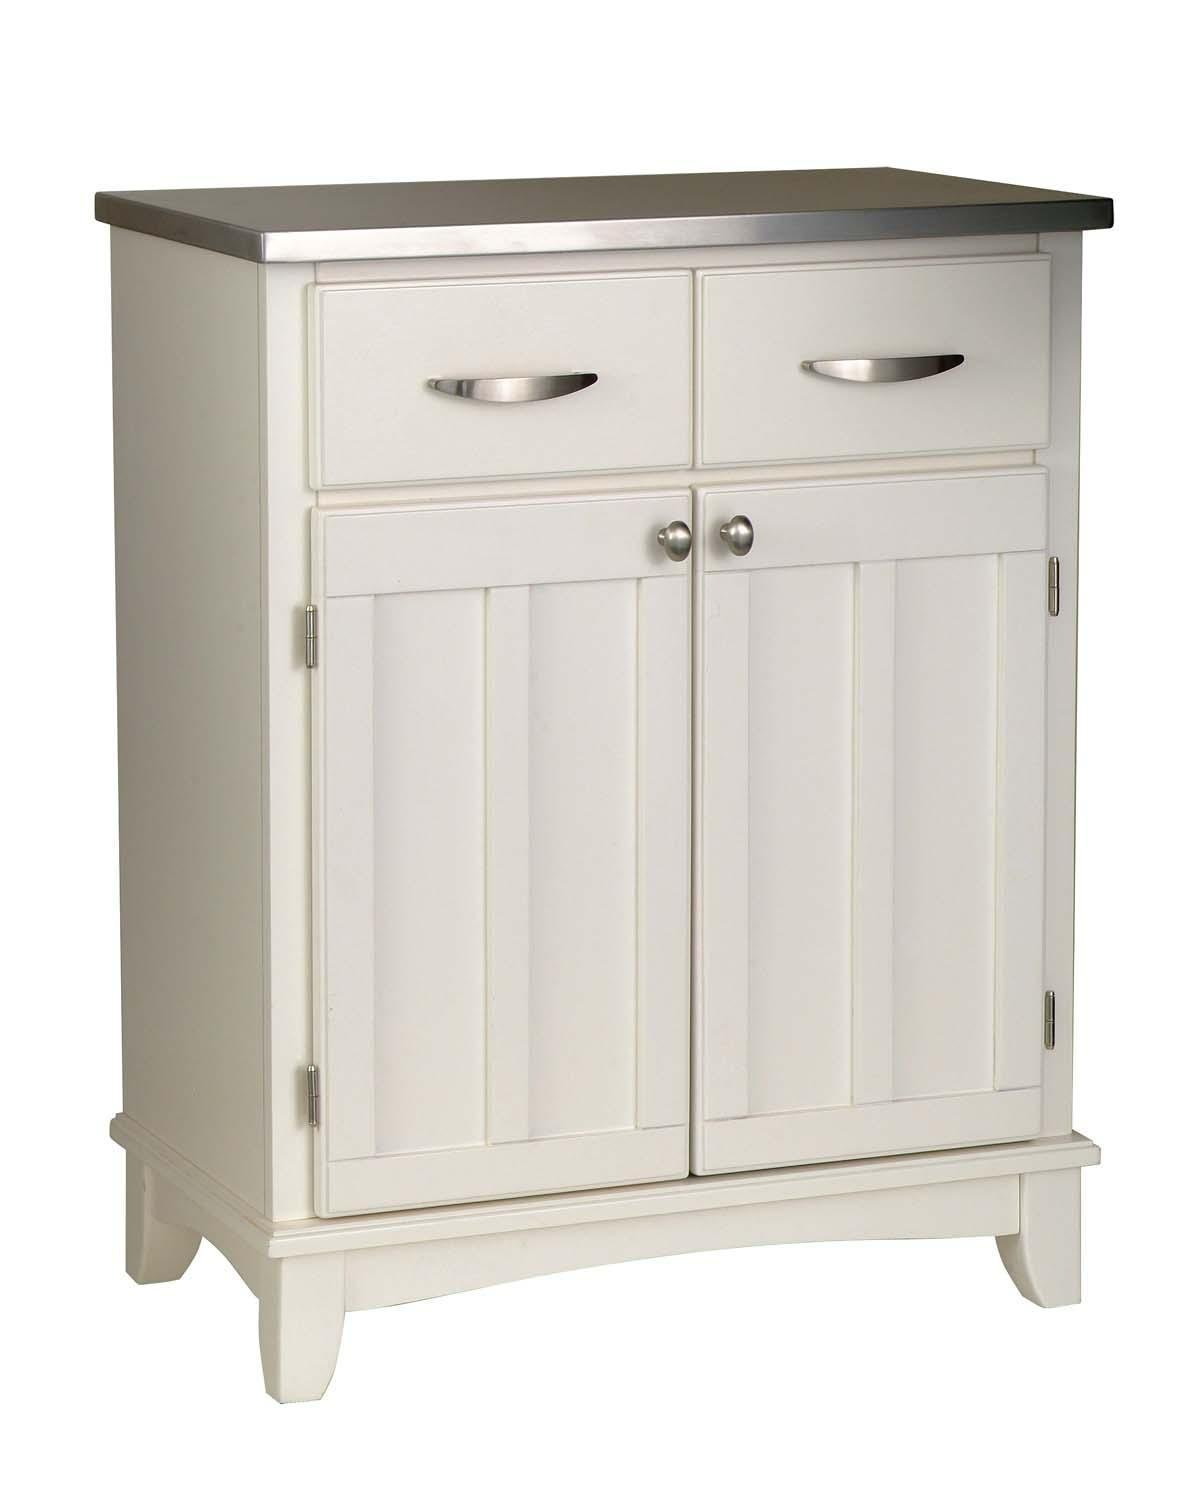 """White Buffet with Stainless Top (White) (35.5""""H x 29.25""""W x 16.5""""D) - Color: White Size: 35.5""""H x 29.25""""W x 16.5""""D Functional and Elegant. - sideboards-buffets, kitchen-dining-room-furniture, kitchen-dining-room - 61y1B8 CpaL -"""